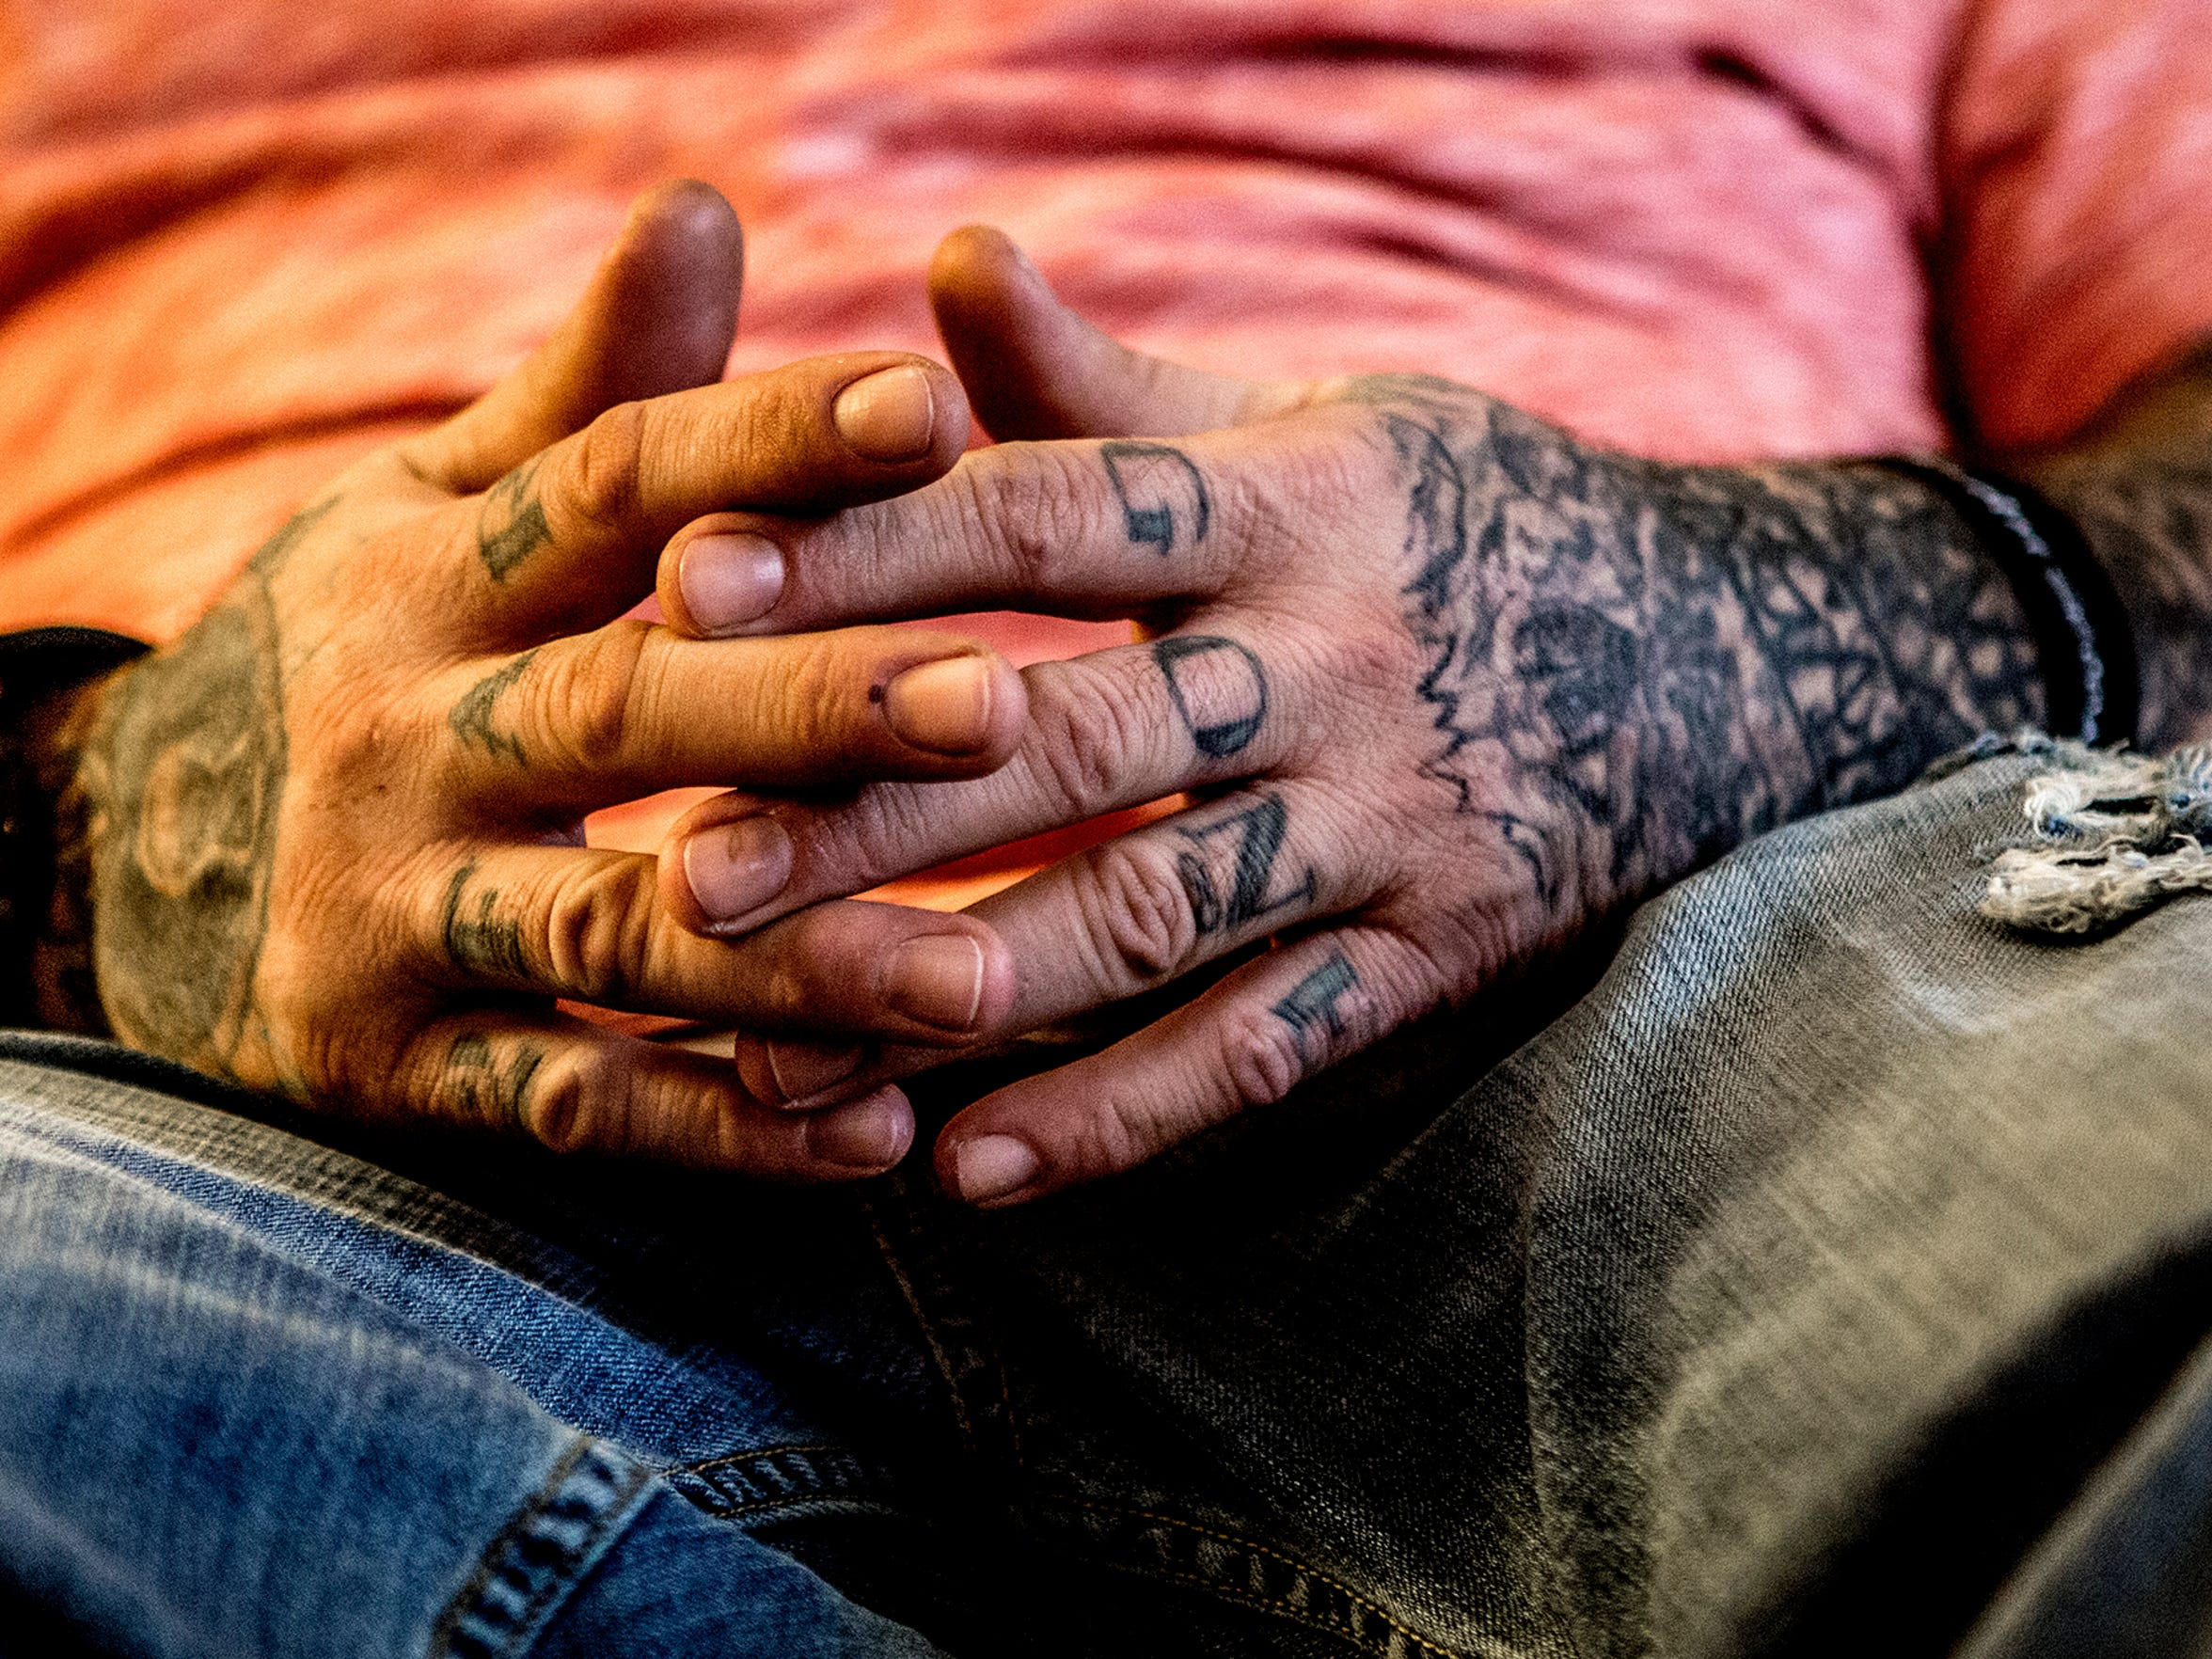 William Rector folds his tattooed hands while speaking about his addiction and recovery. Rector credits the Newark Addiction Recovery Initiative with saving his life.